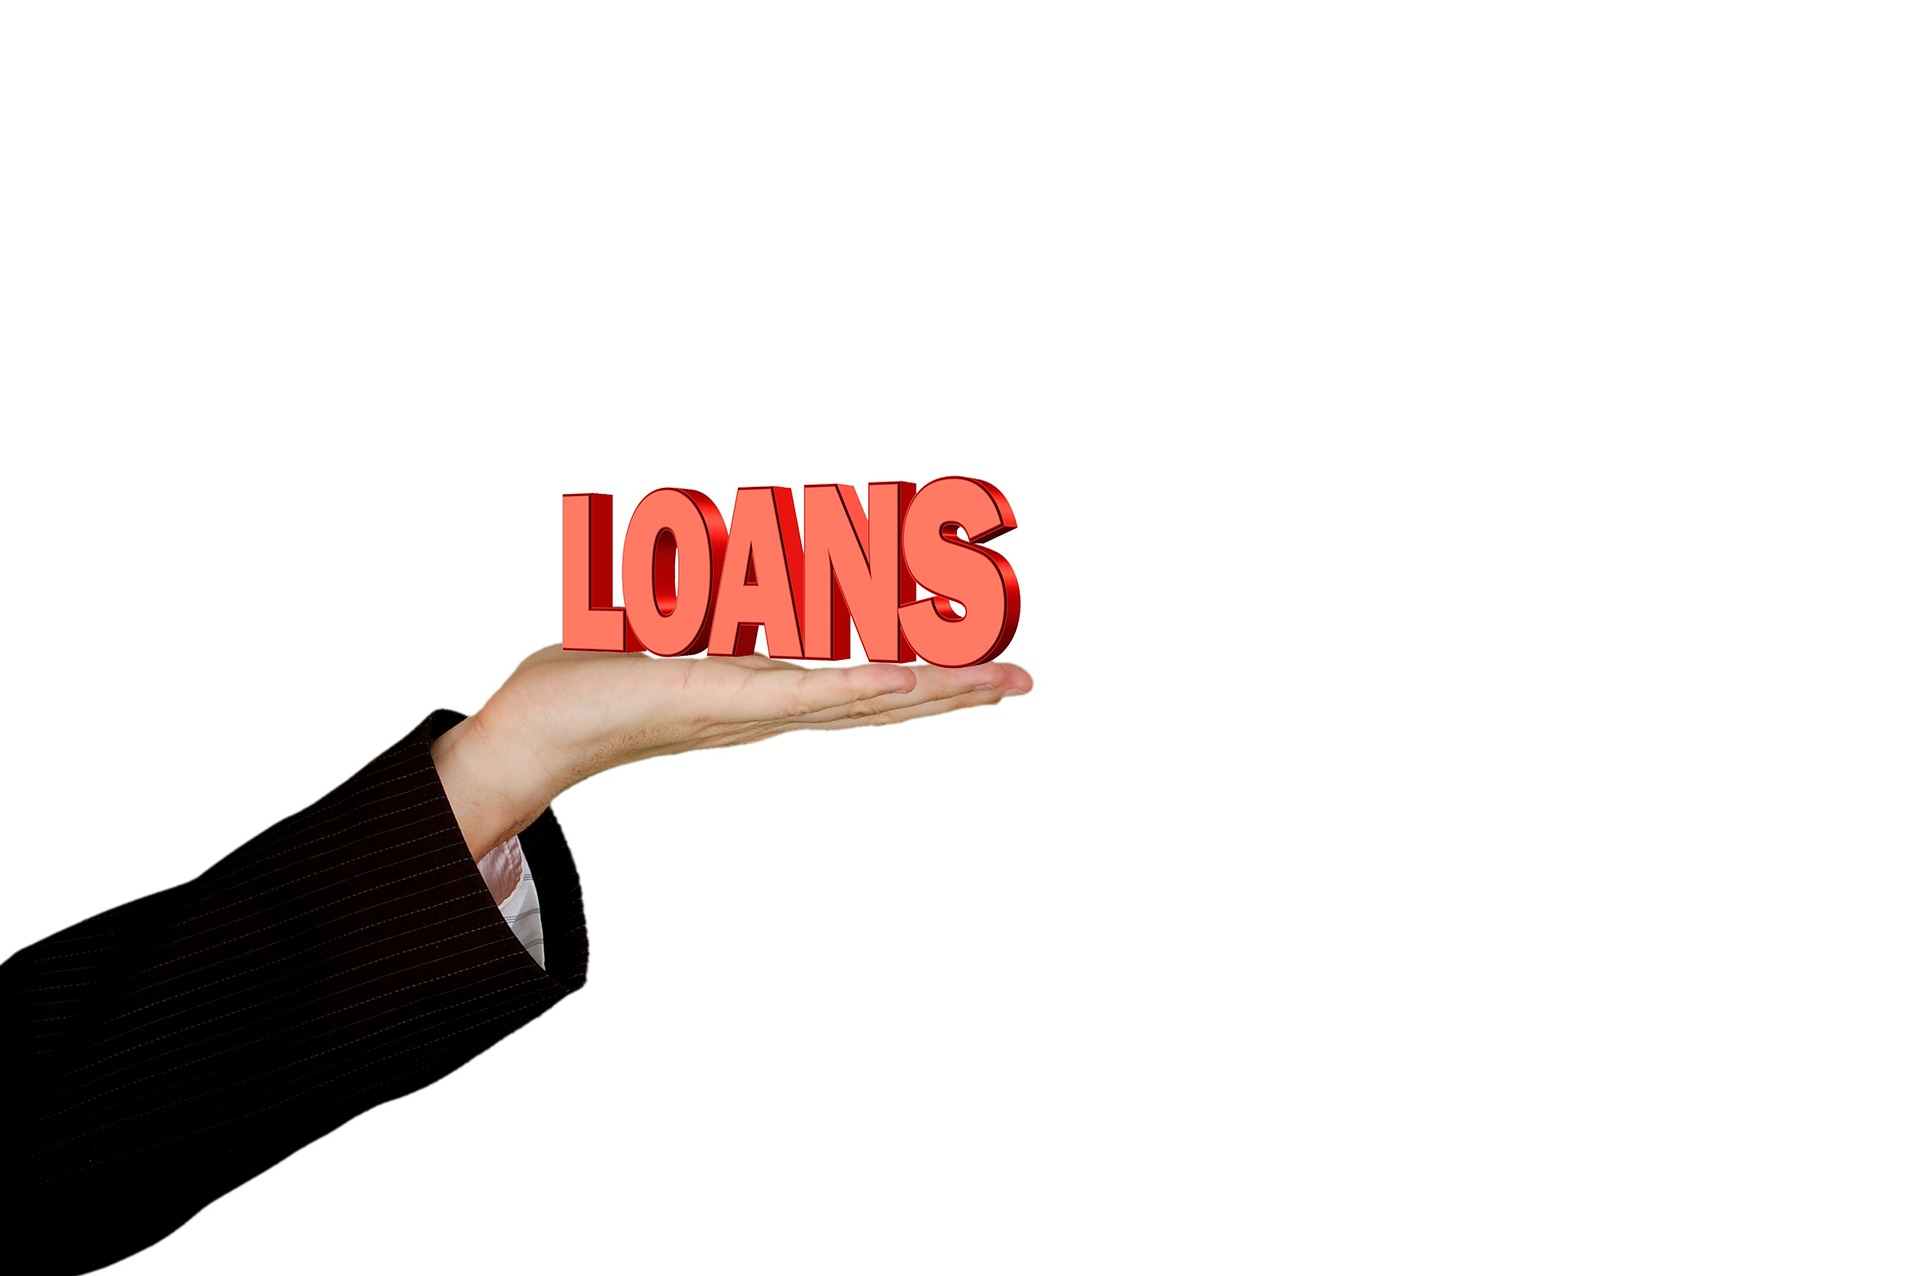 Student loan troubles? A lawyer can help